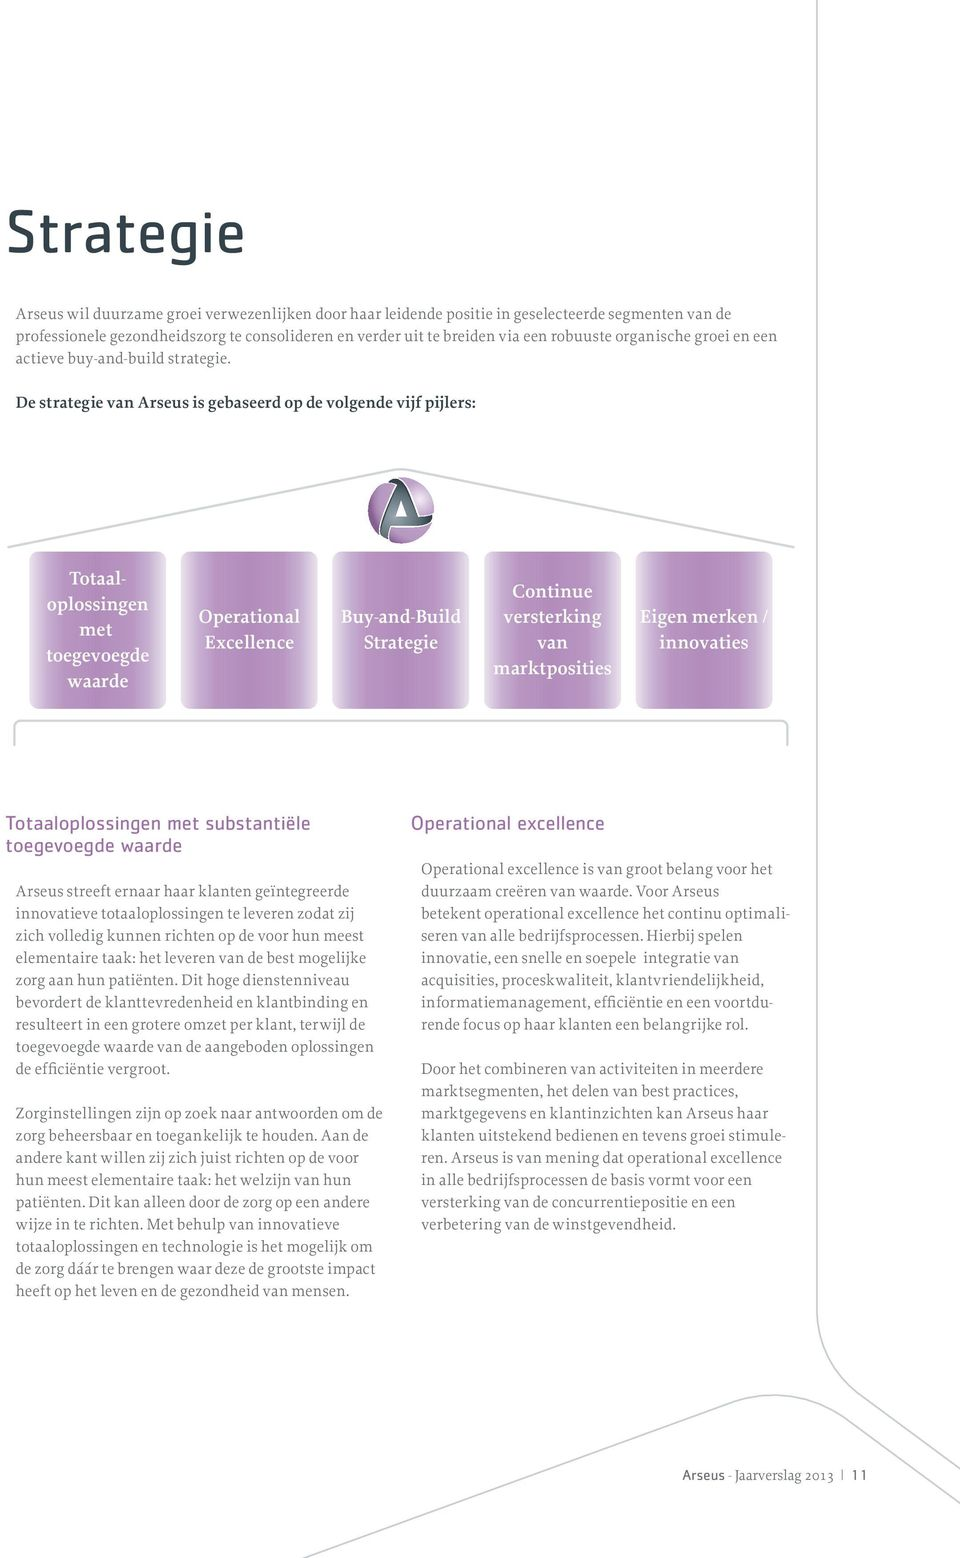 De strategie van Arseus is gebaseerd op de volgende vijf pijlers: Totaaloplossingen met toegevoegde waarde Operational Excellence Buy-and-Build Strategie Continue versterking van marktposities Eigen